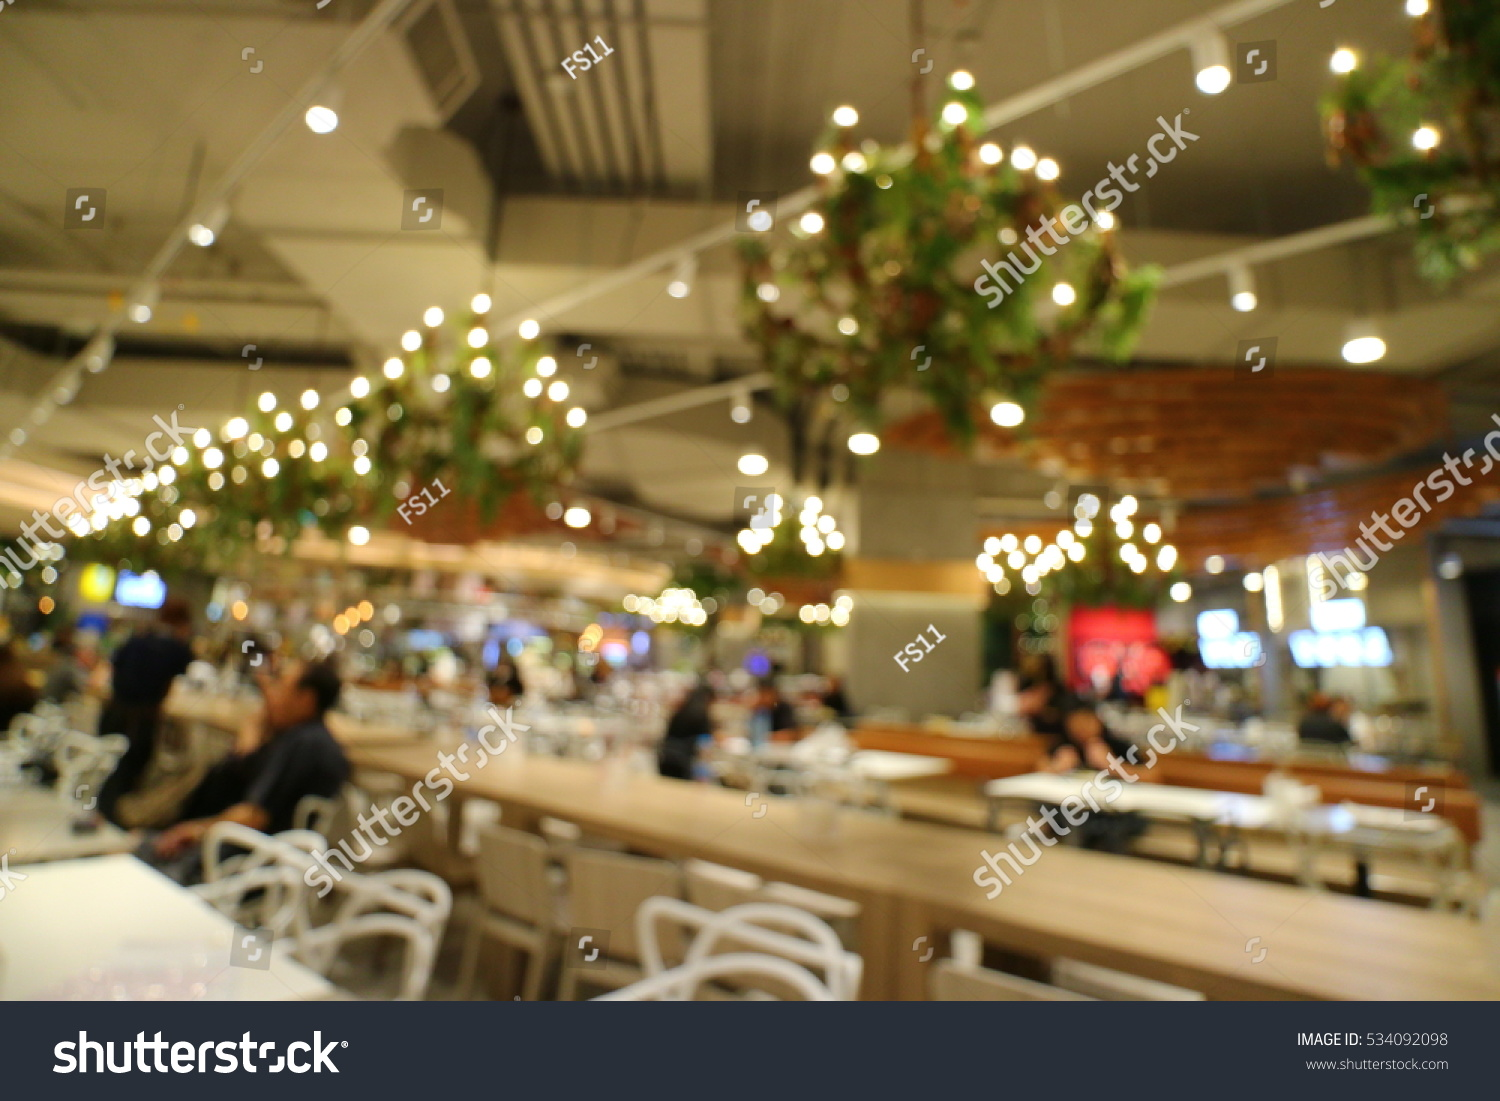 Food court fast restaurant interior stock photo